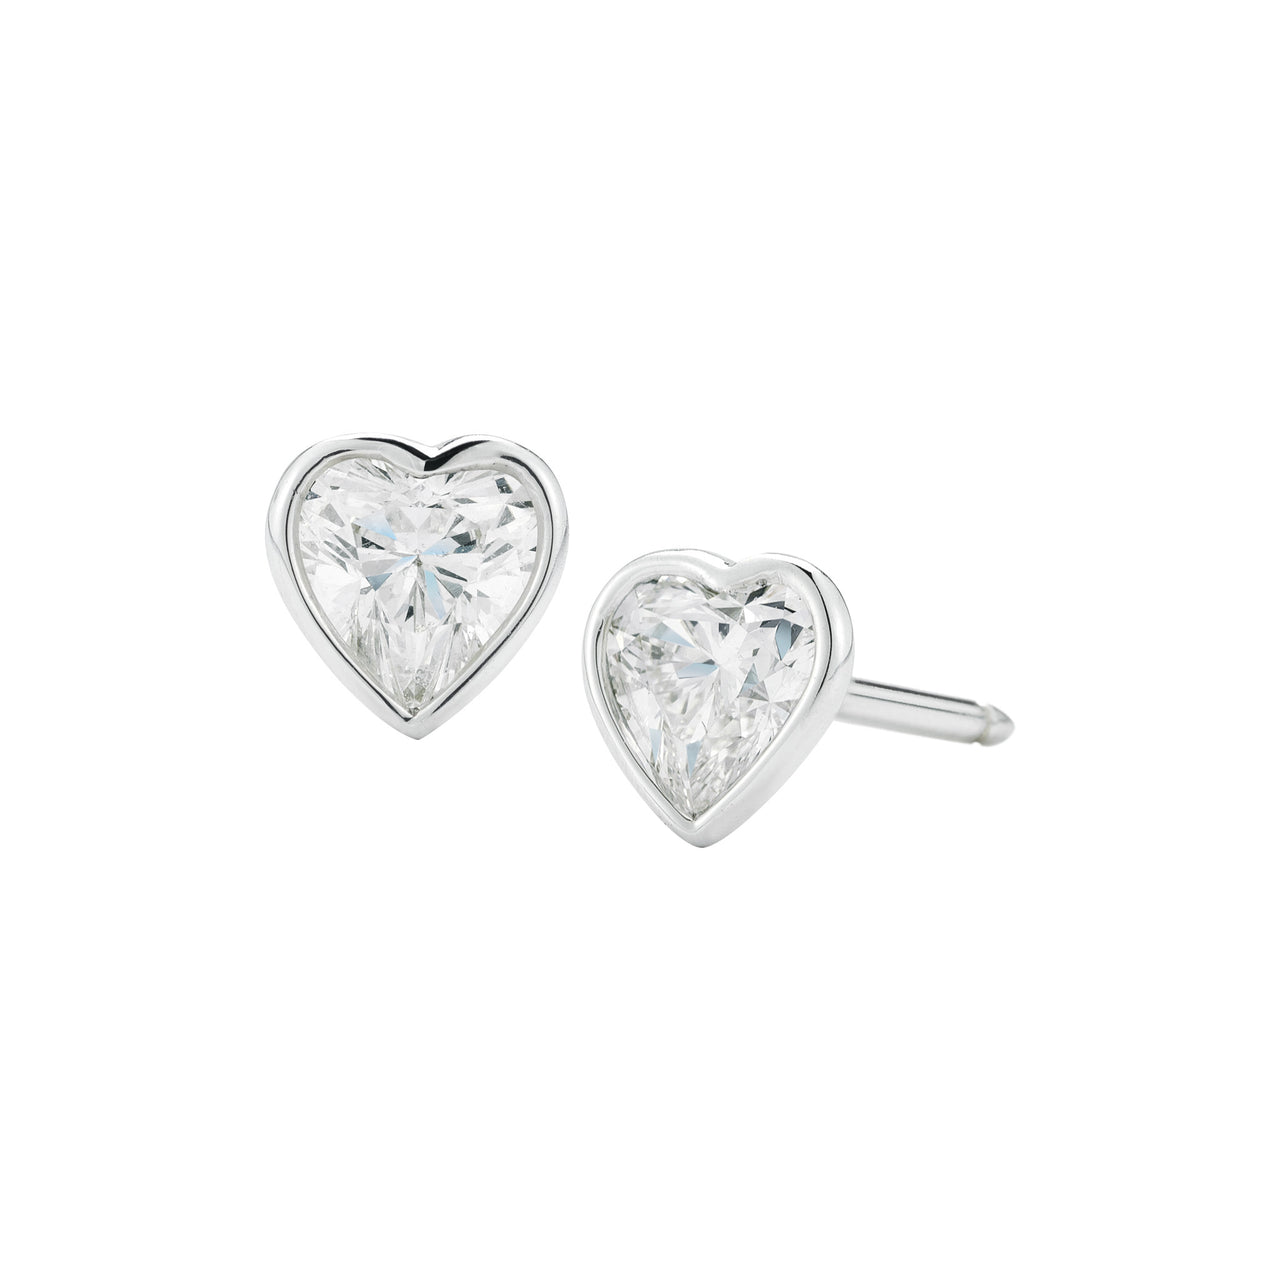 Finn everyday handmade 18k gold diamond heart studs